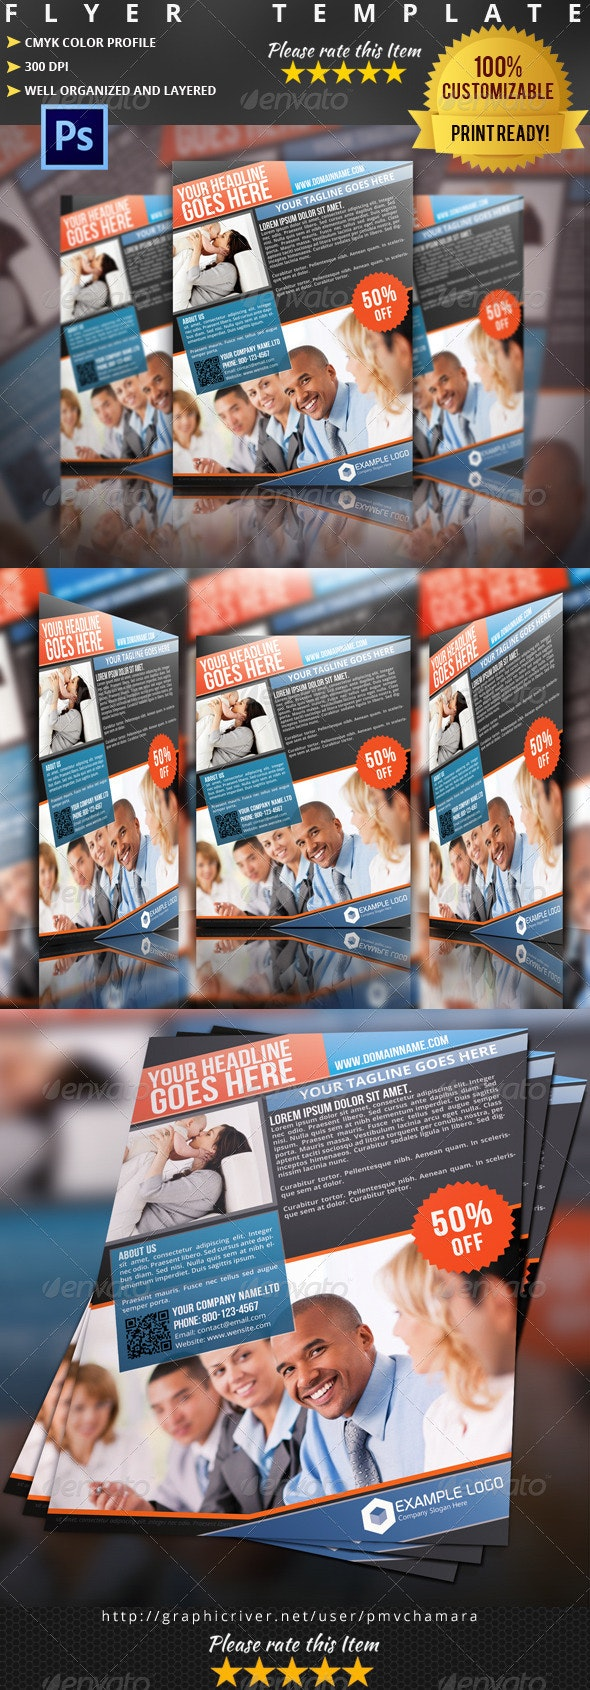 Insurance Flyer Template 03 - Corporate Flyers